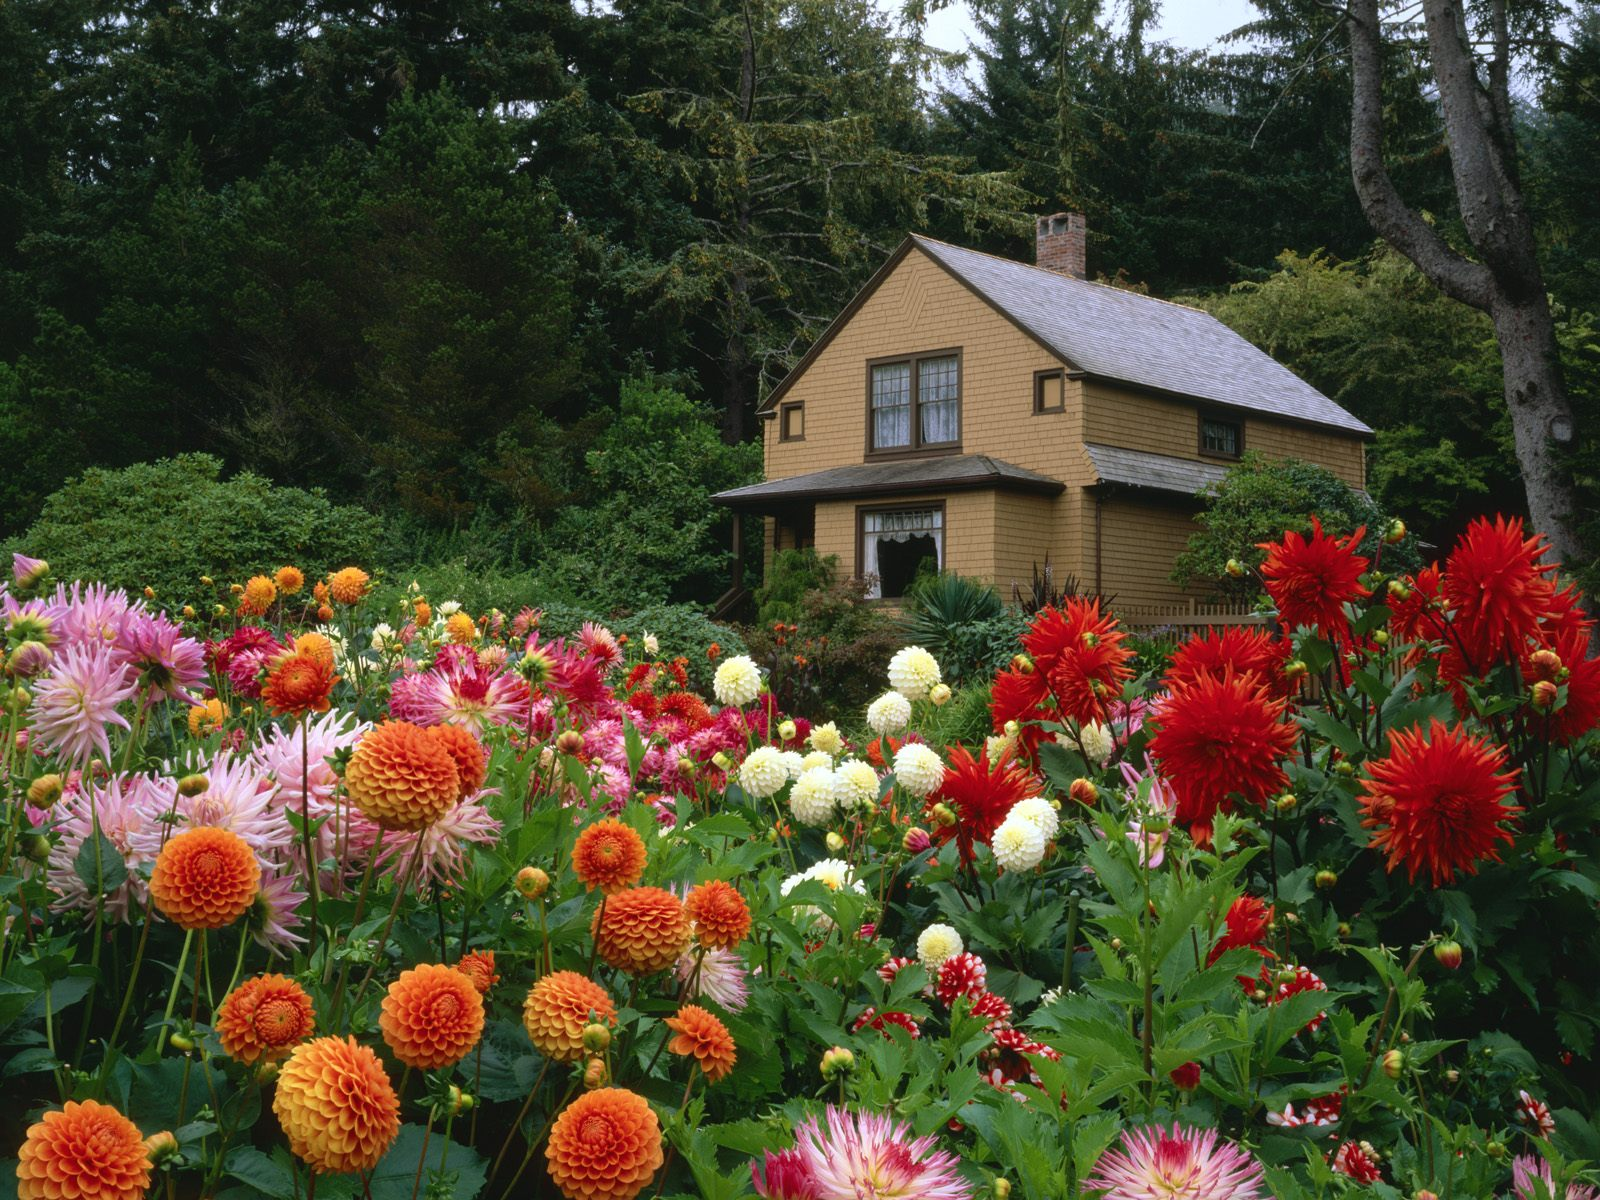 garden-house-and-dahlias-shore-acres-state-park-oregon